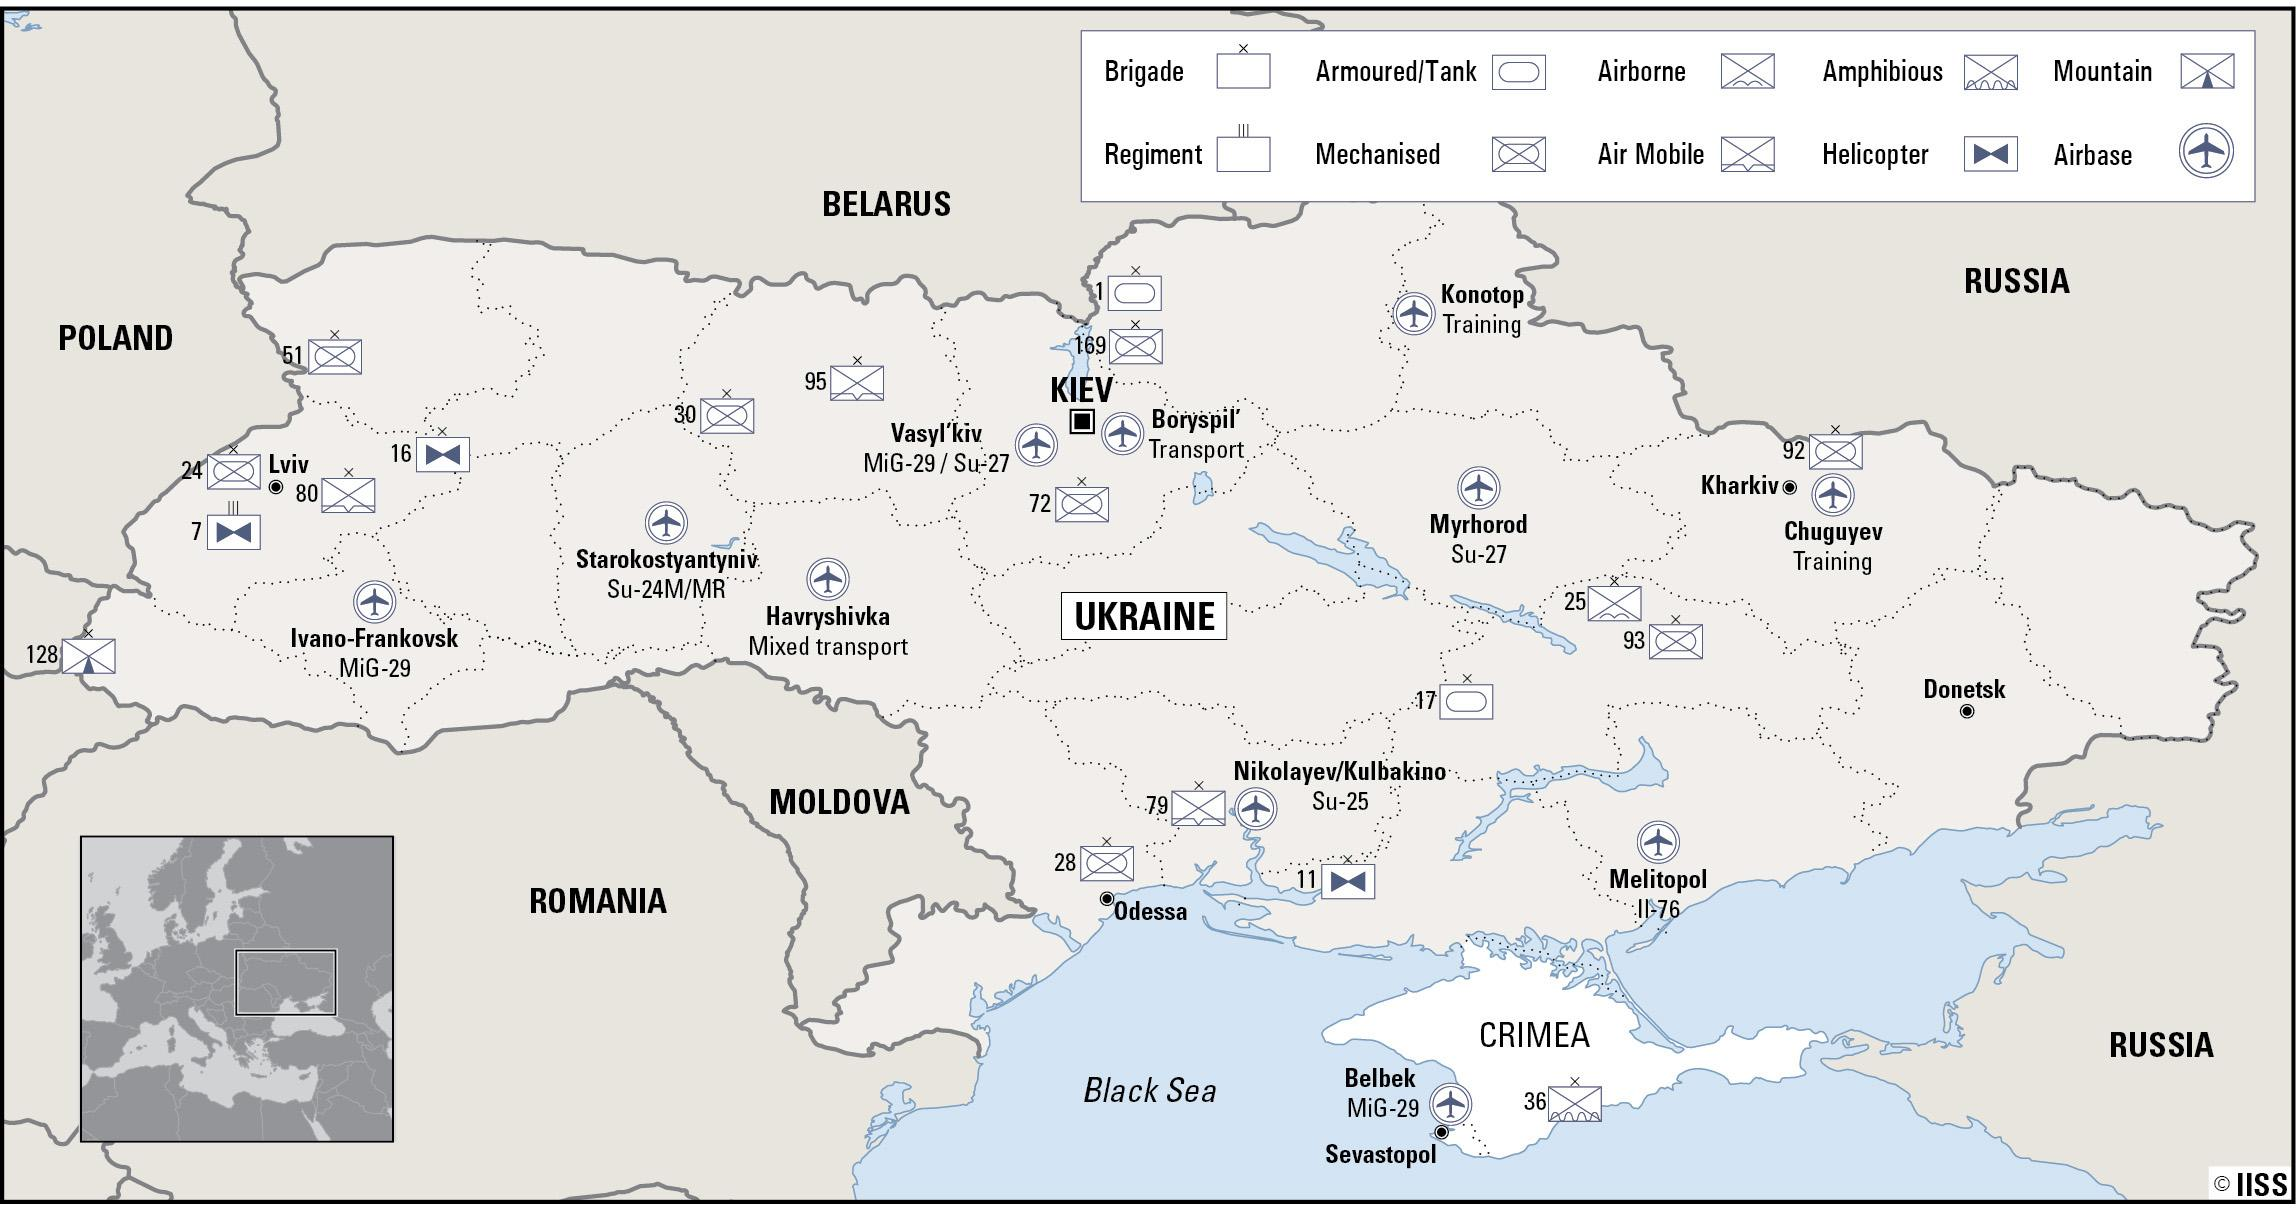 Ukraine-Crimea-2014 map